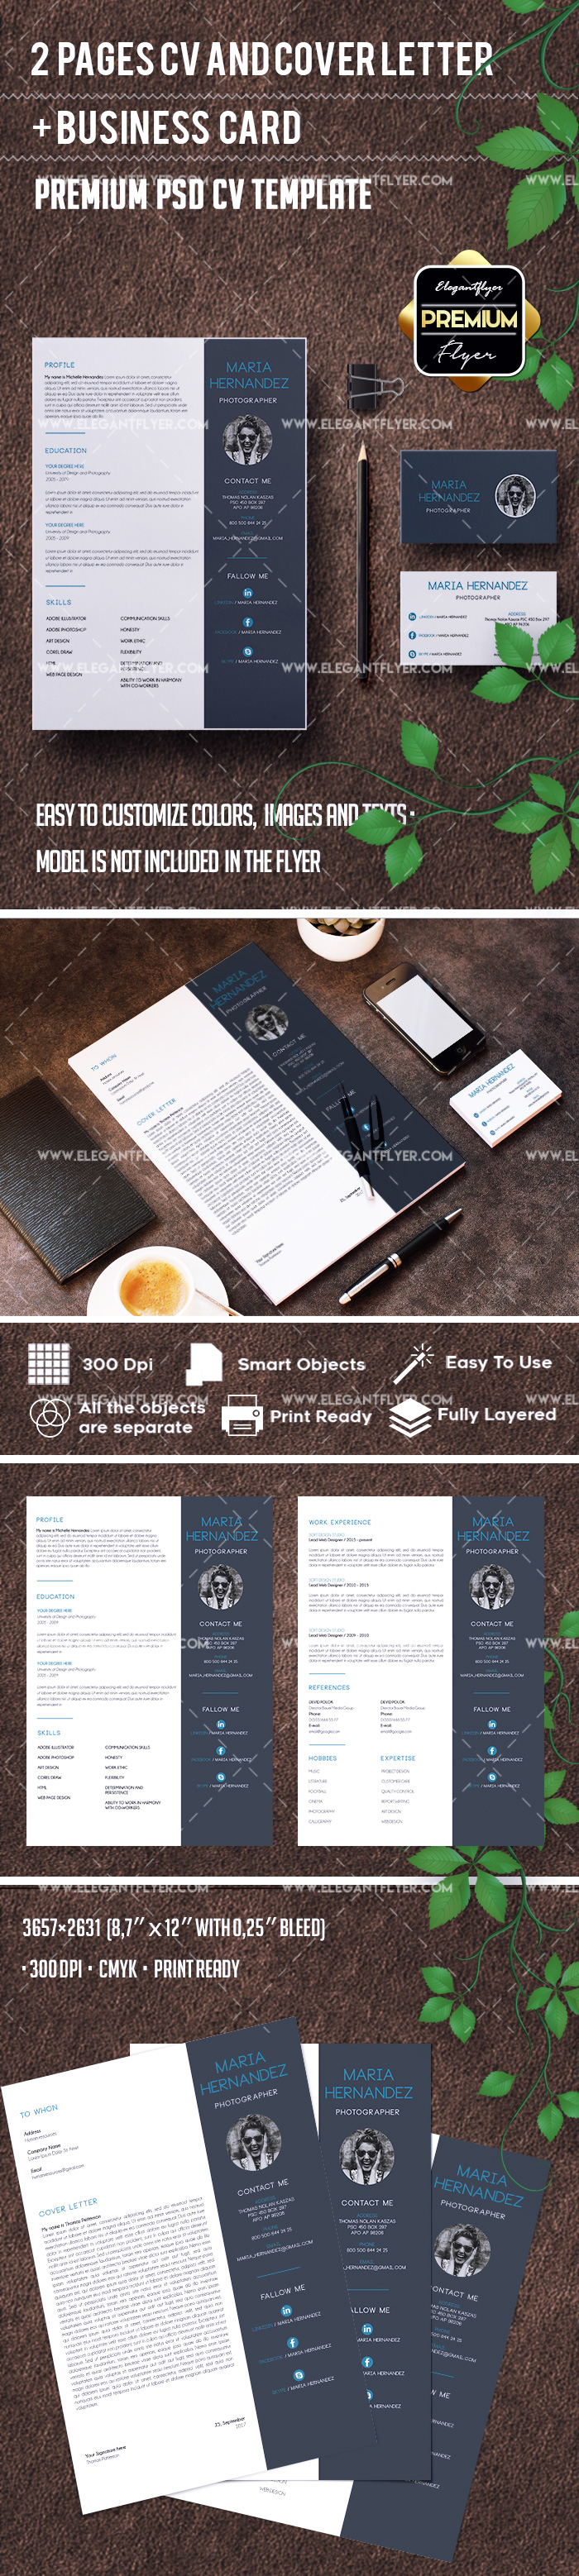 Working Resume Template in PSD + CV and Cover Letter